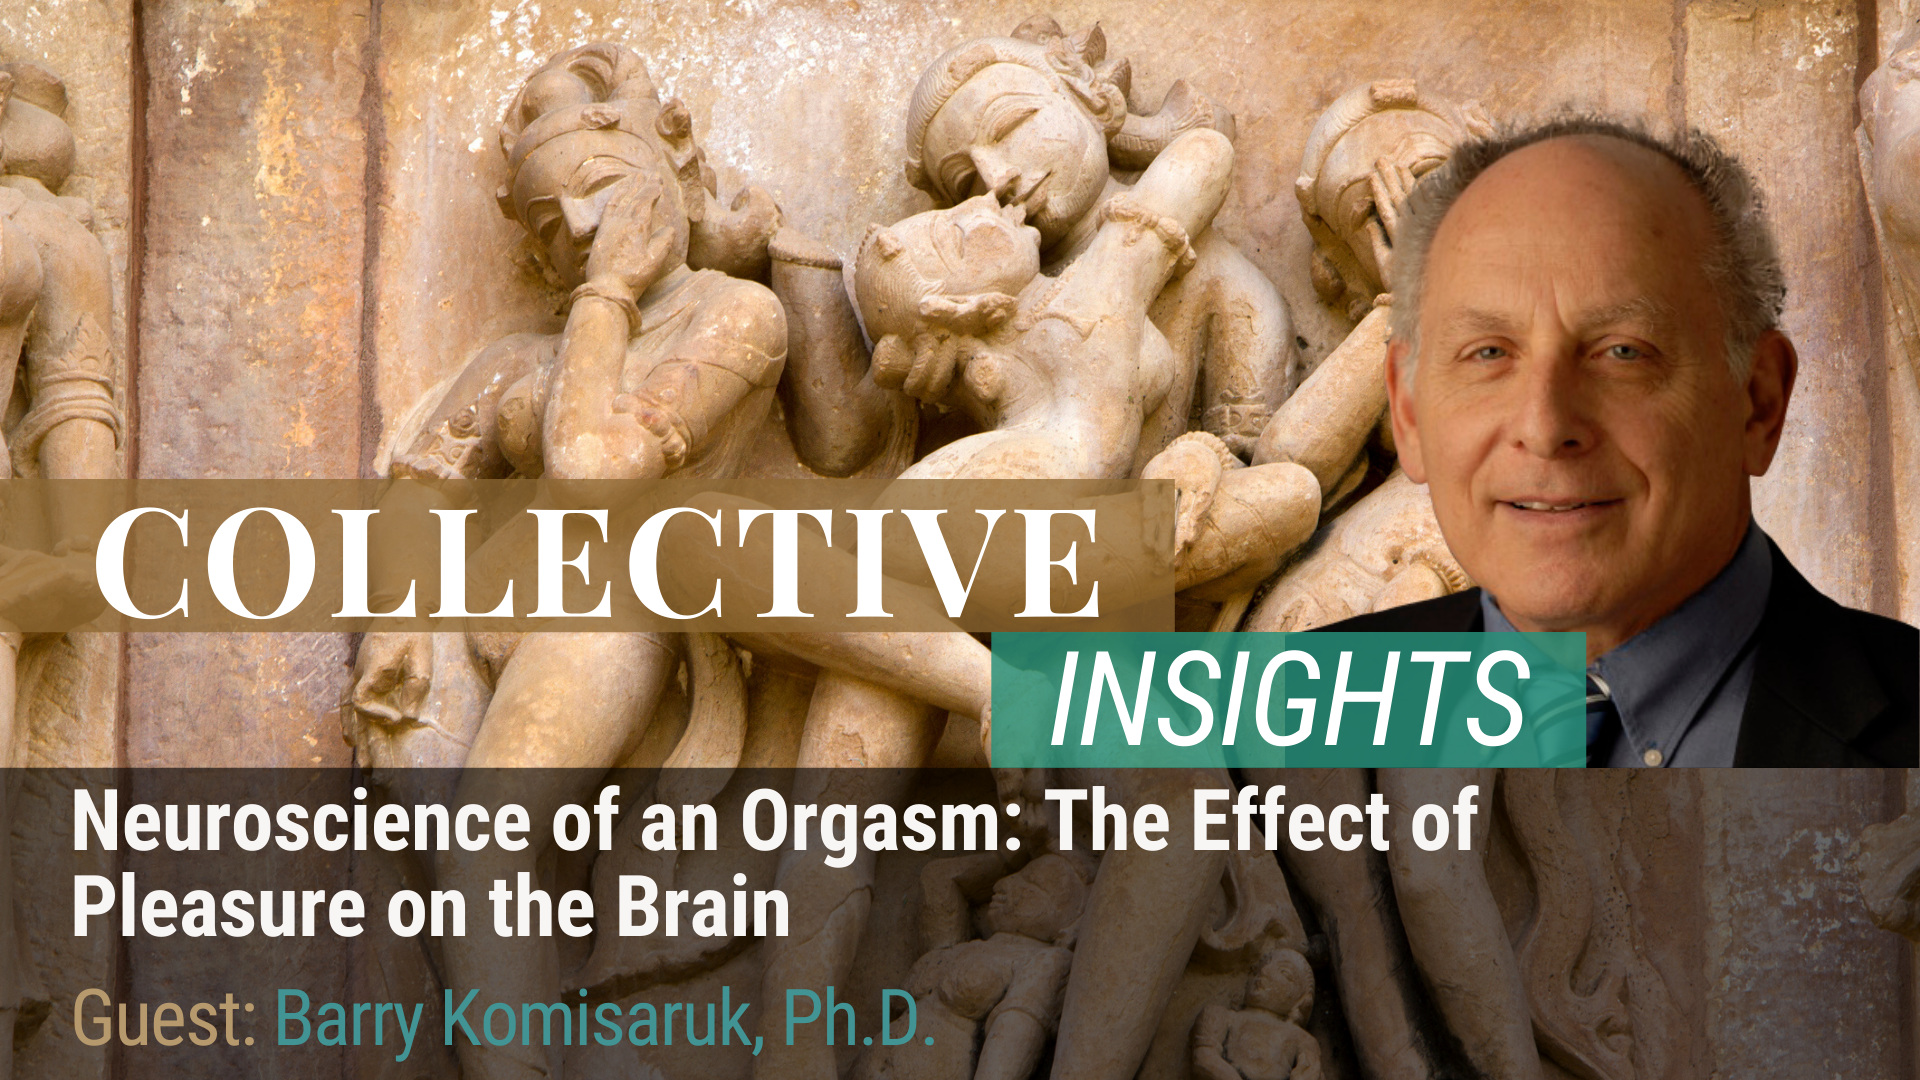 Neuroscience of an Orgasm: The Effect of Pleasure on the Brain